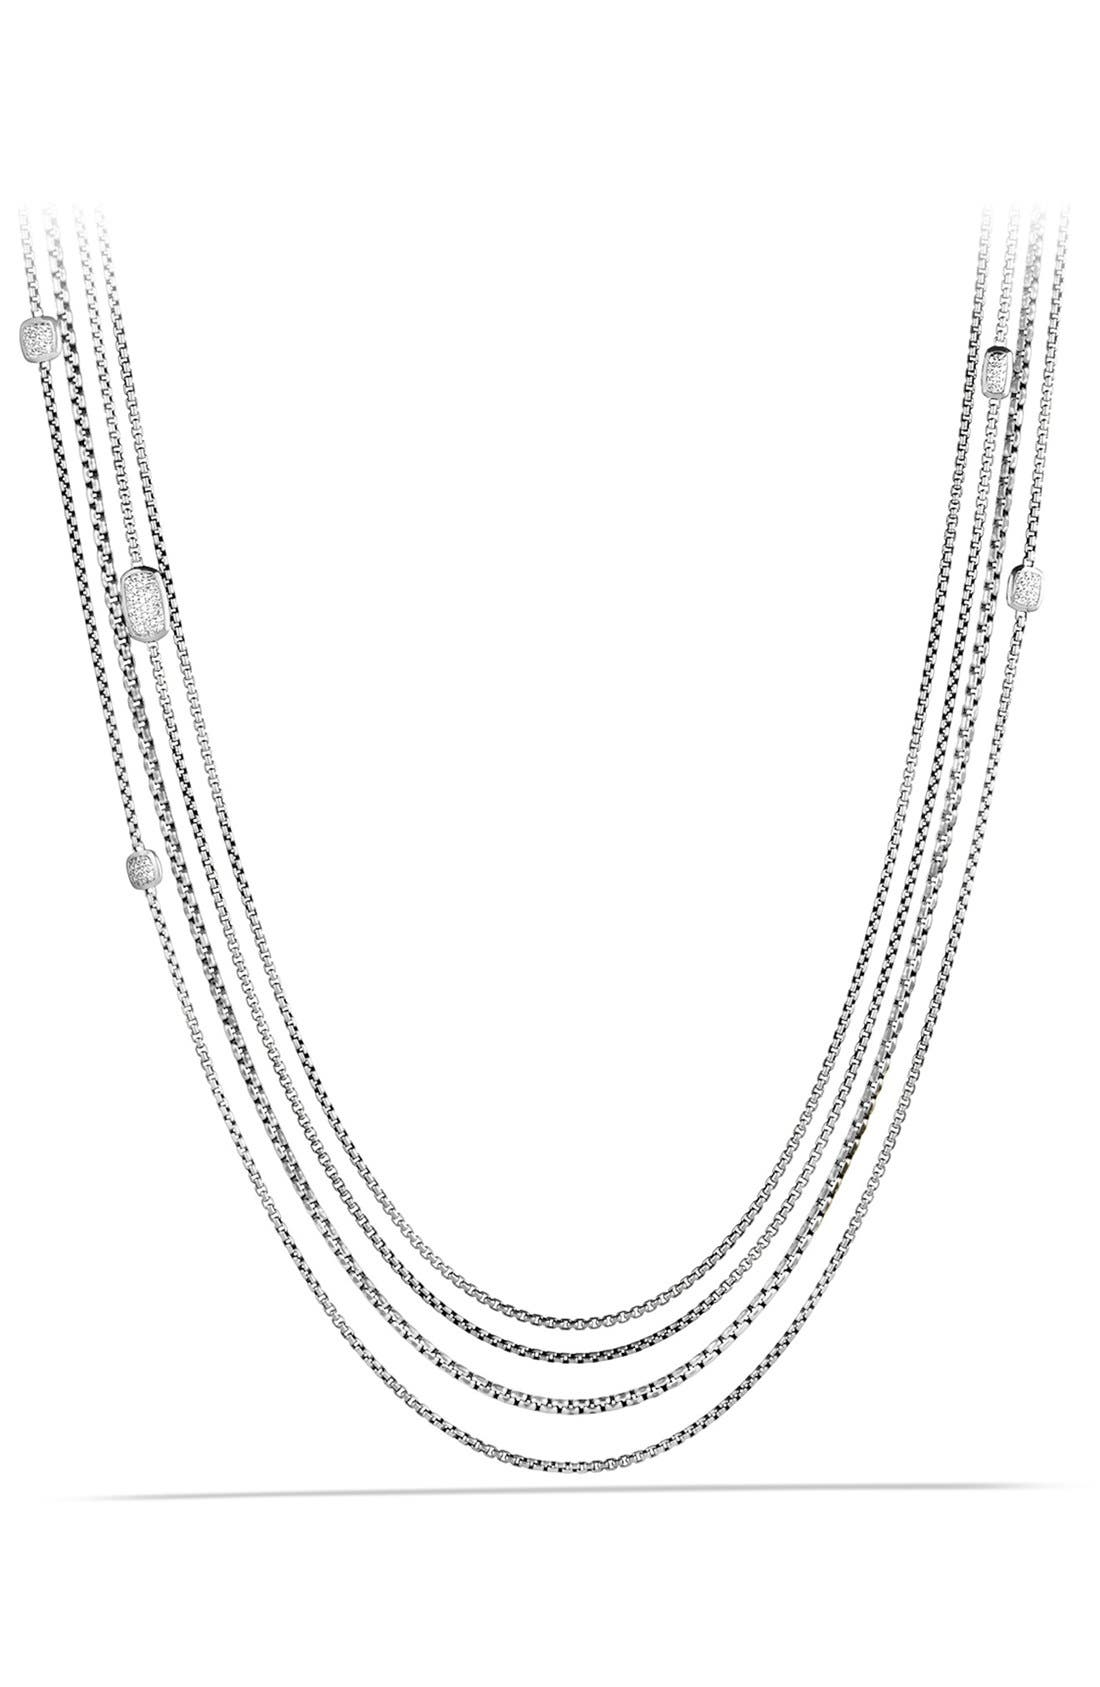 David Yurman 'Confetti' Station Necklace with Diamonds